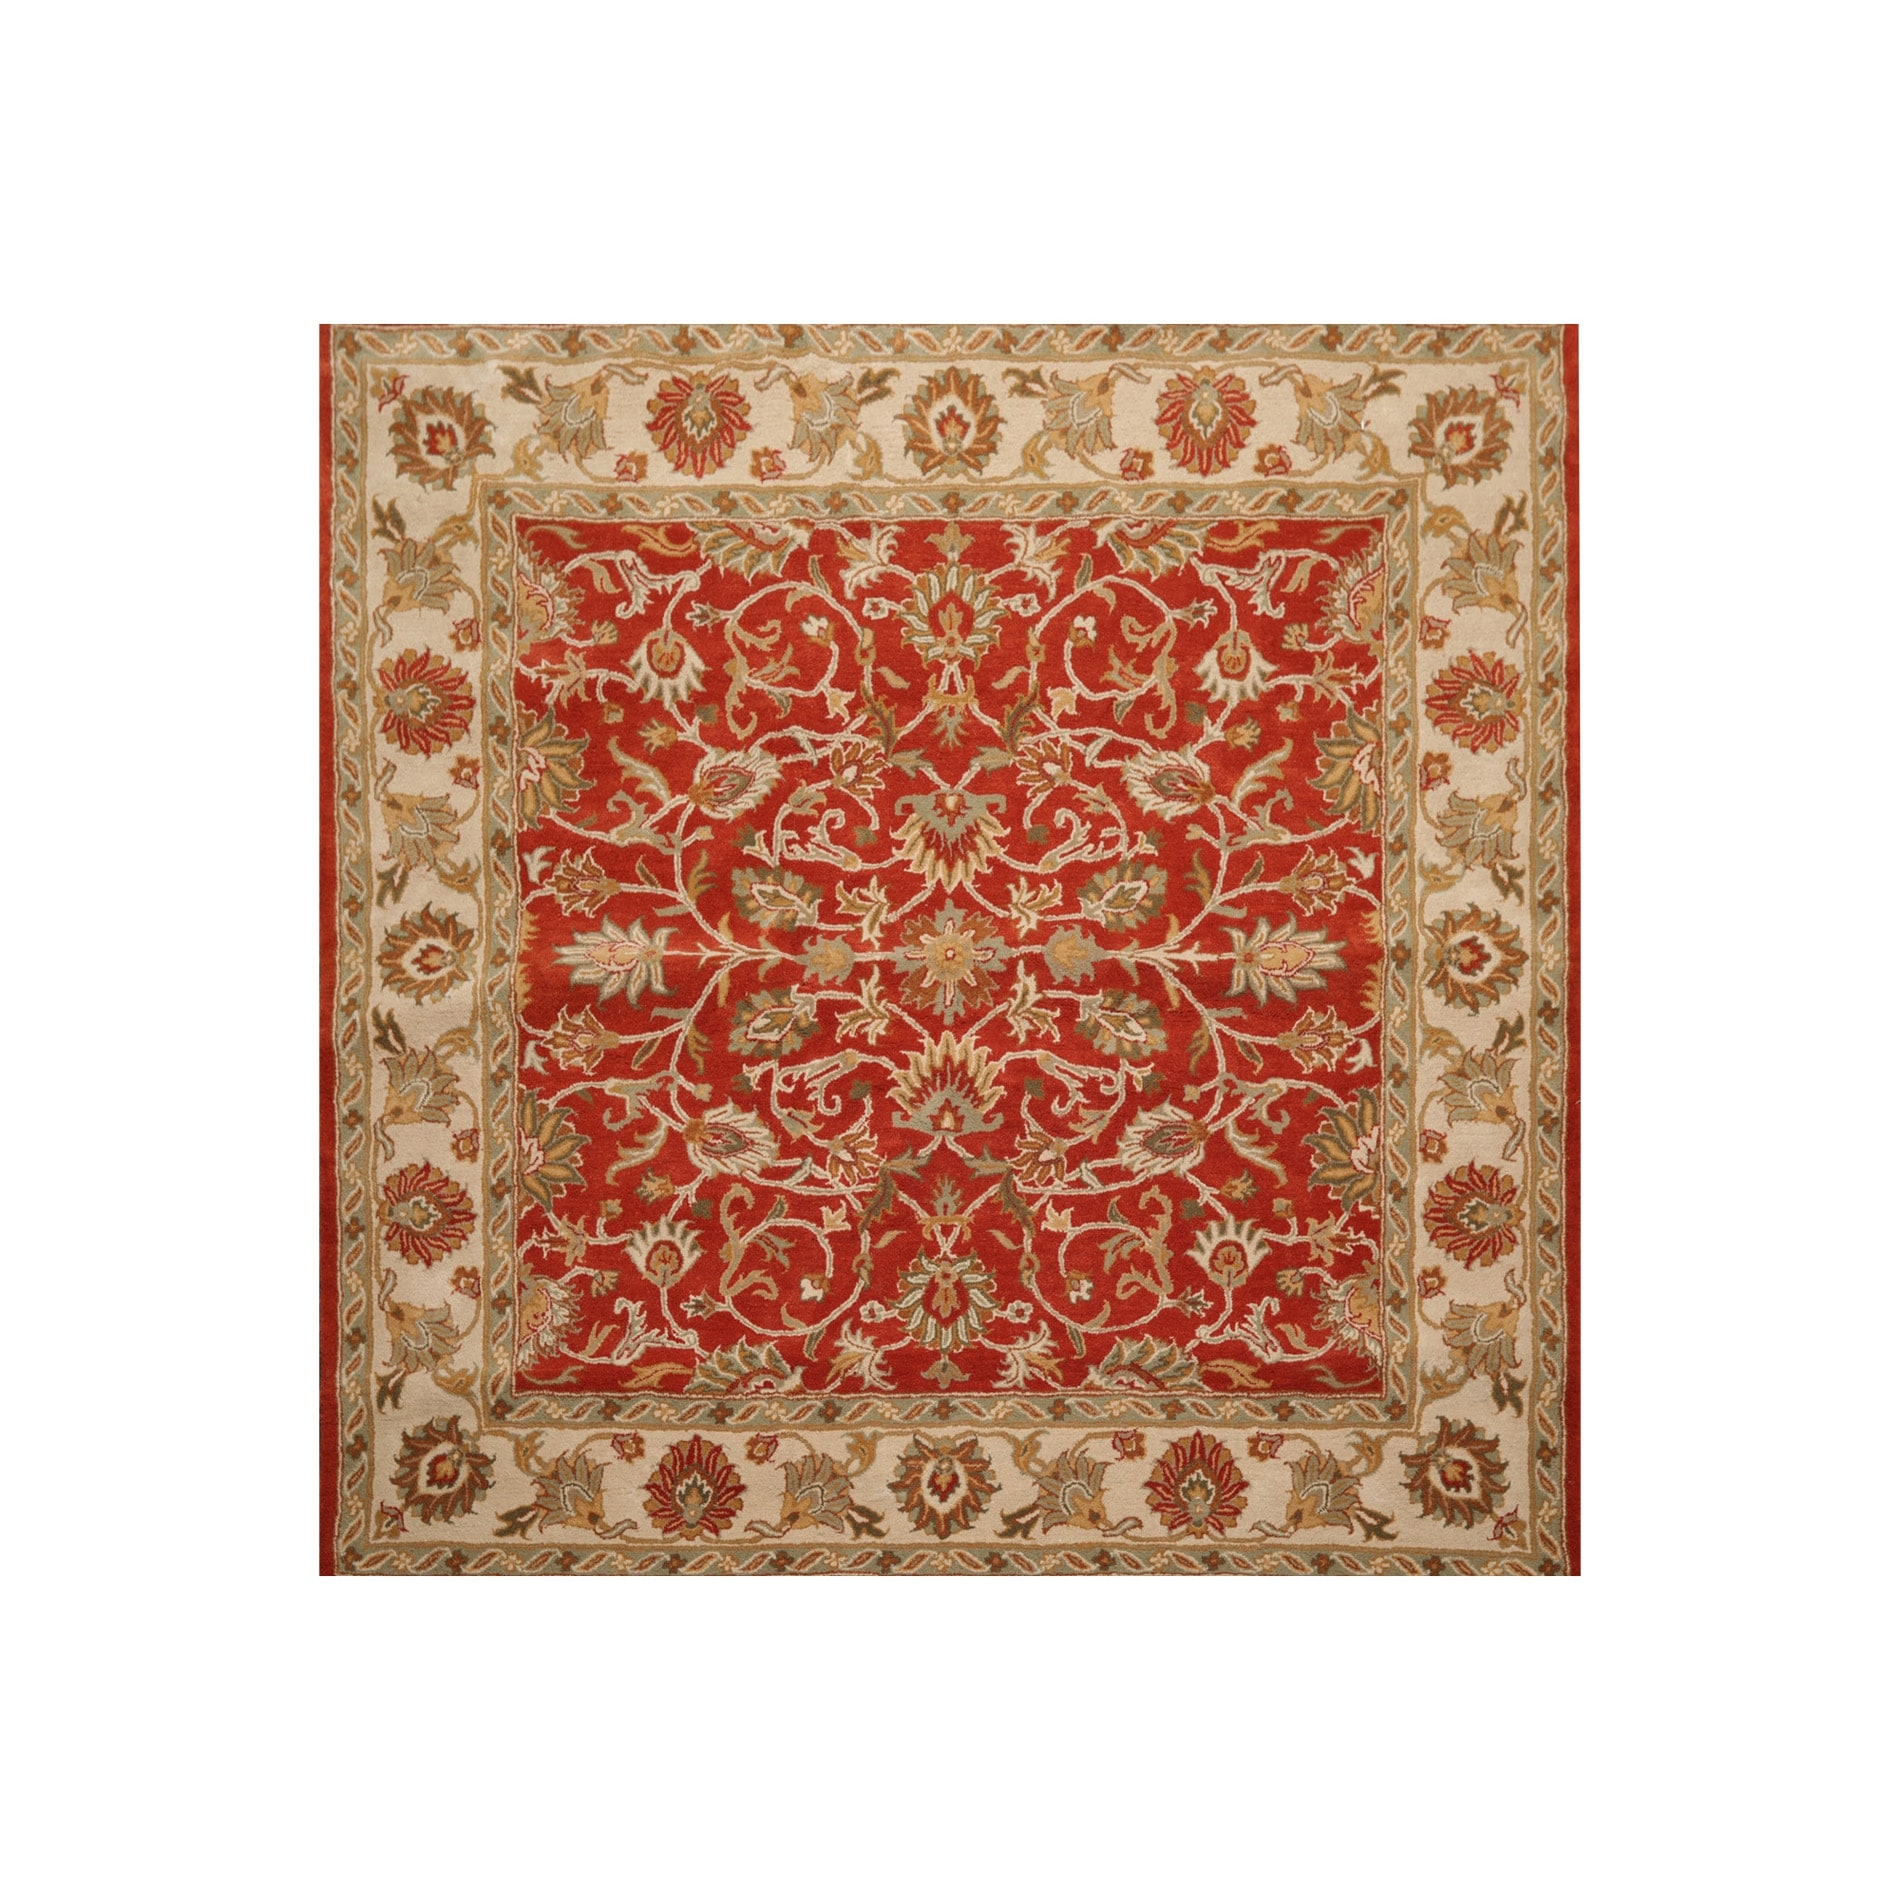 Square Hand Tufted 100 Wool Square Traditional Oriental Area Rug Orange Beige Color 8 X 8 On Sale Overstock 32343748